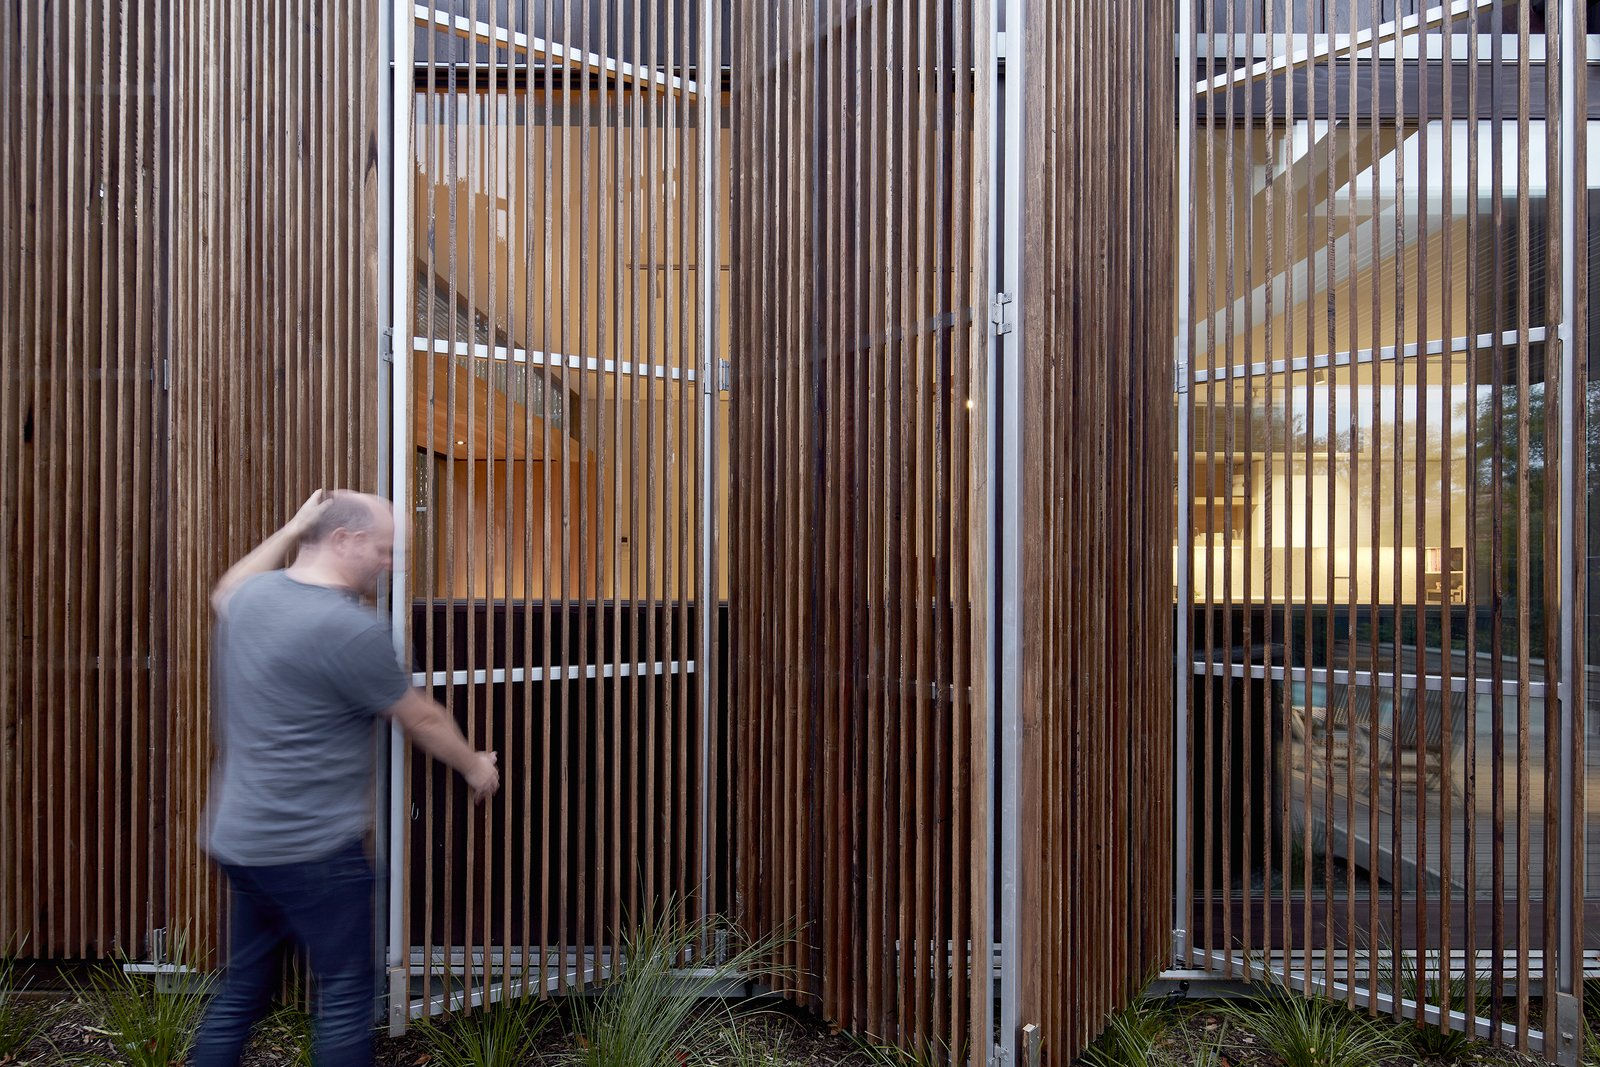 Windows, Sliding Window Type, Picture Window Type, and Wood In winter, the wooden screens can be opened to draw in the warm, afternoon sun.  Photo 13 of 17 in Wooden Screens Shade This Sustainable Melbourne Residence